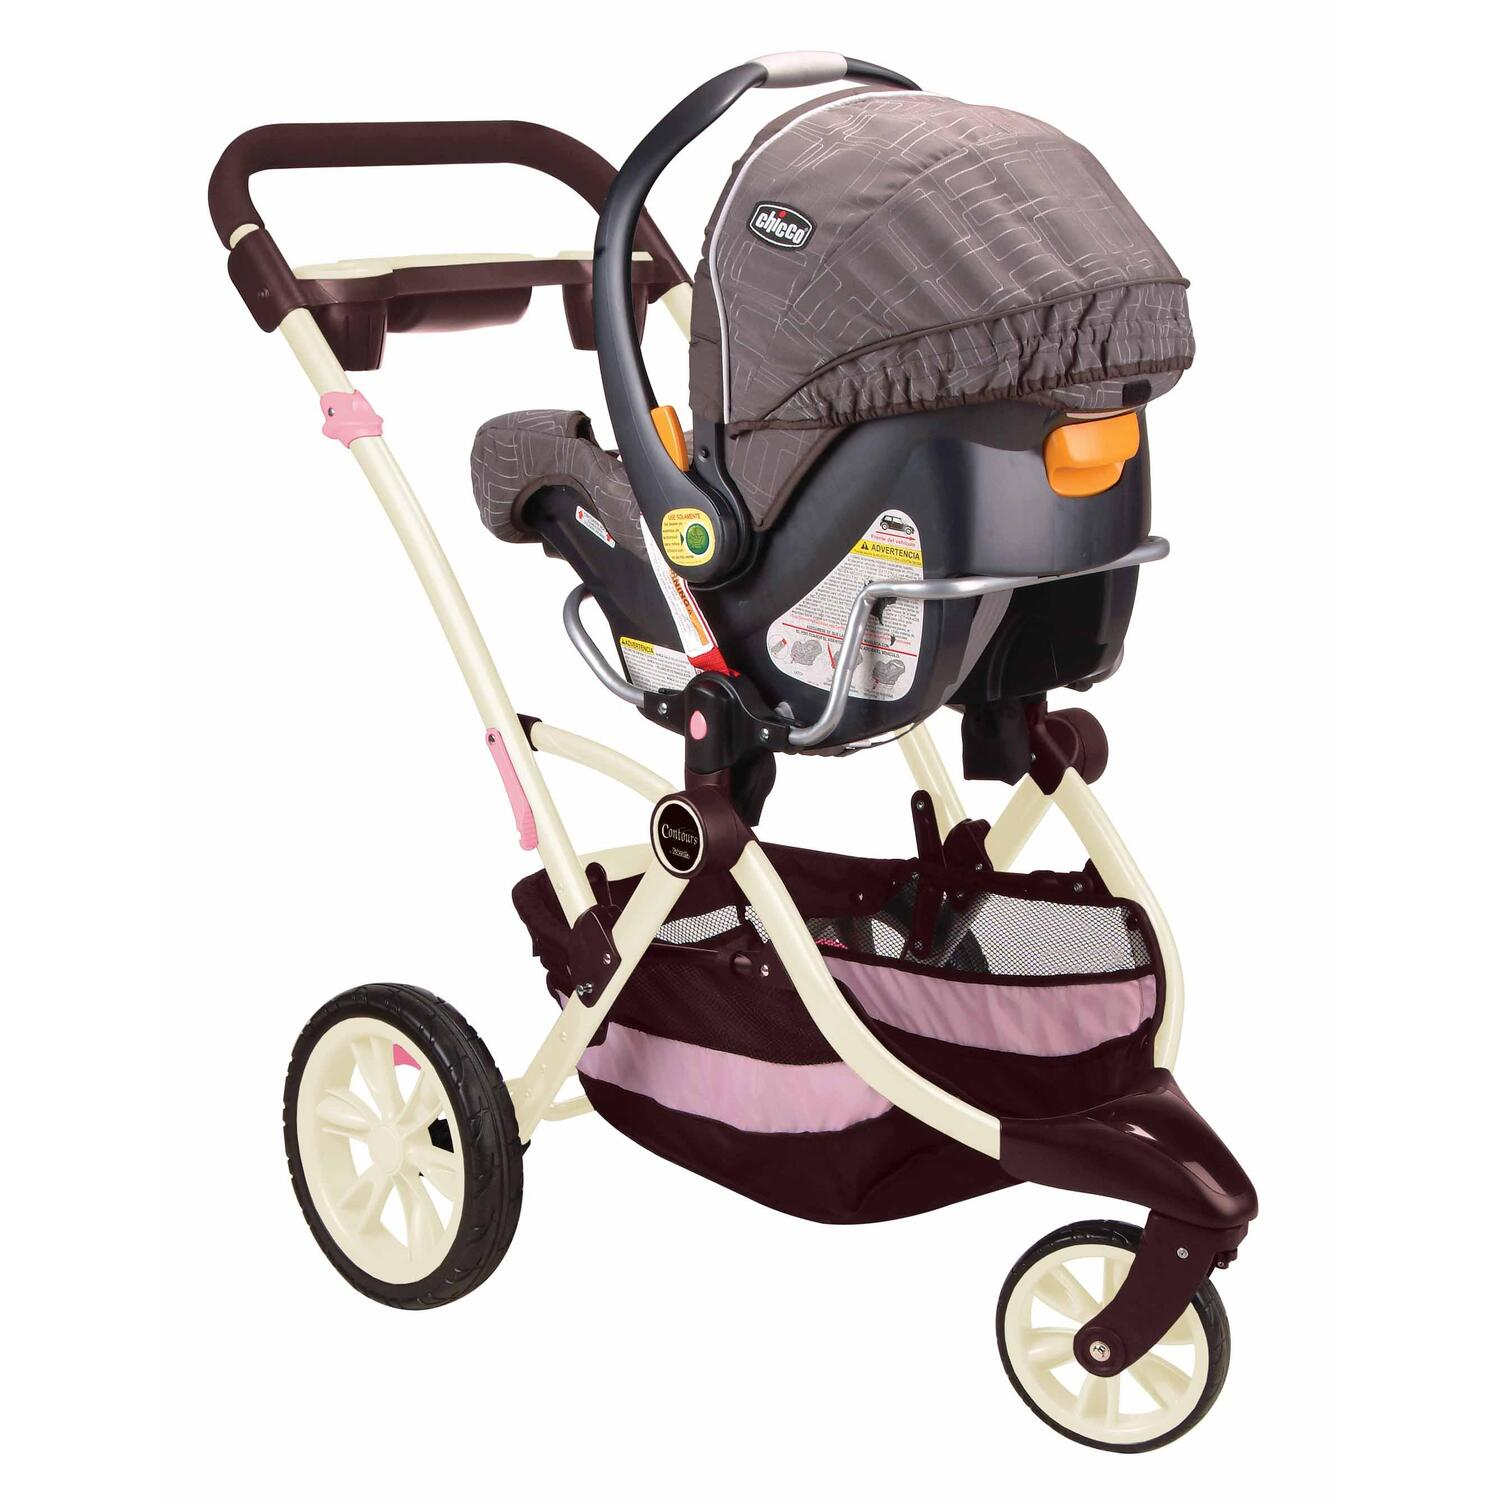 Kolcraft Contours Options 3 Wheel Stroller From 32 99